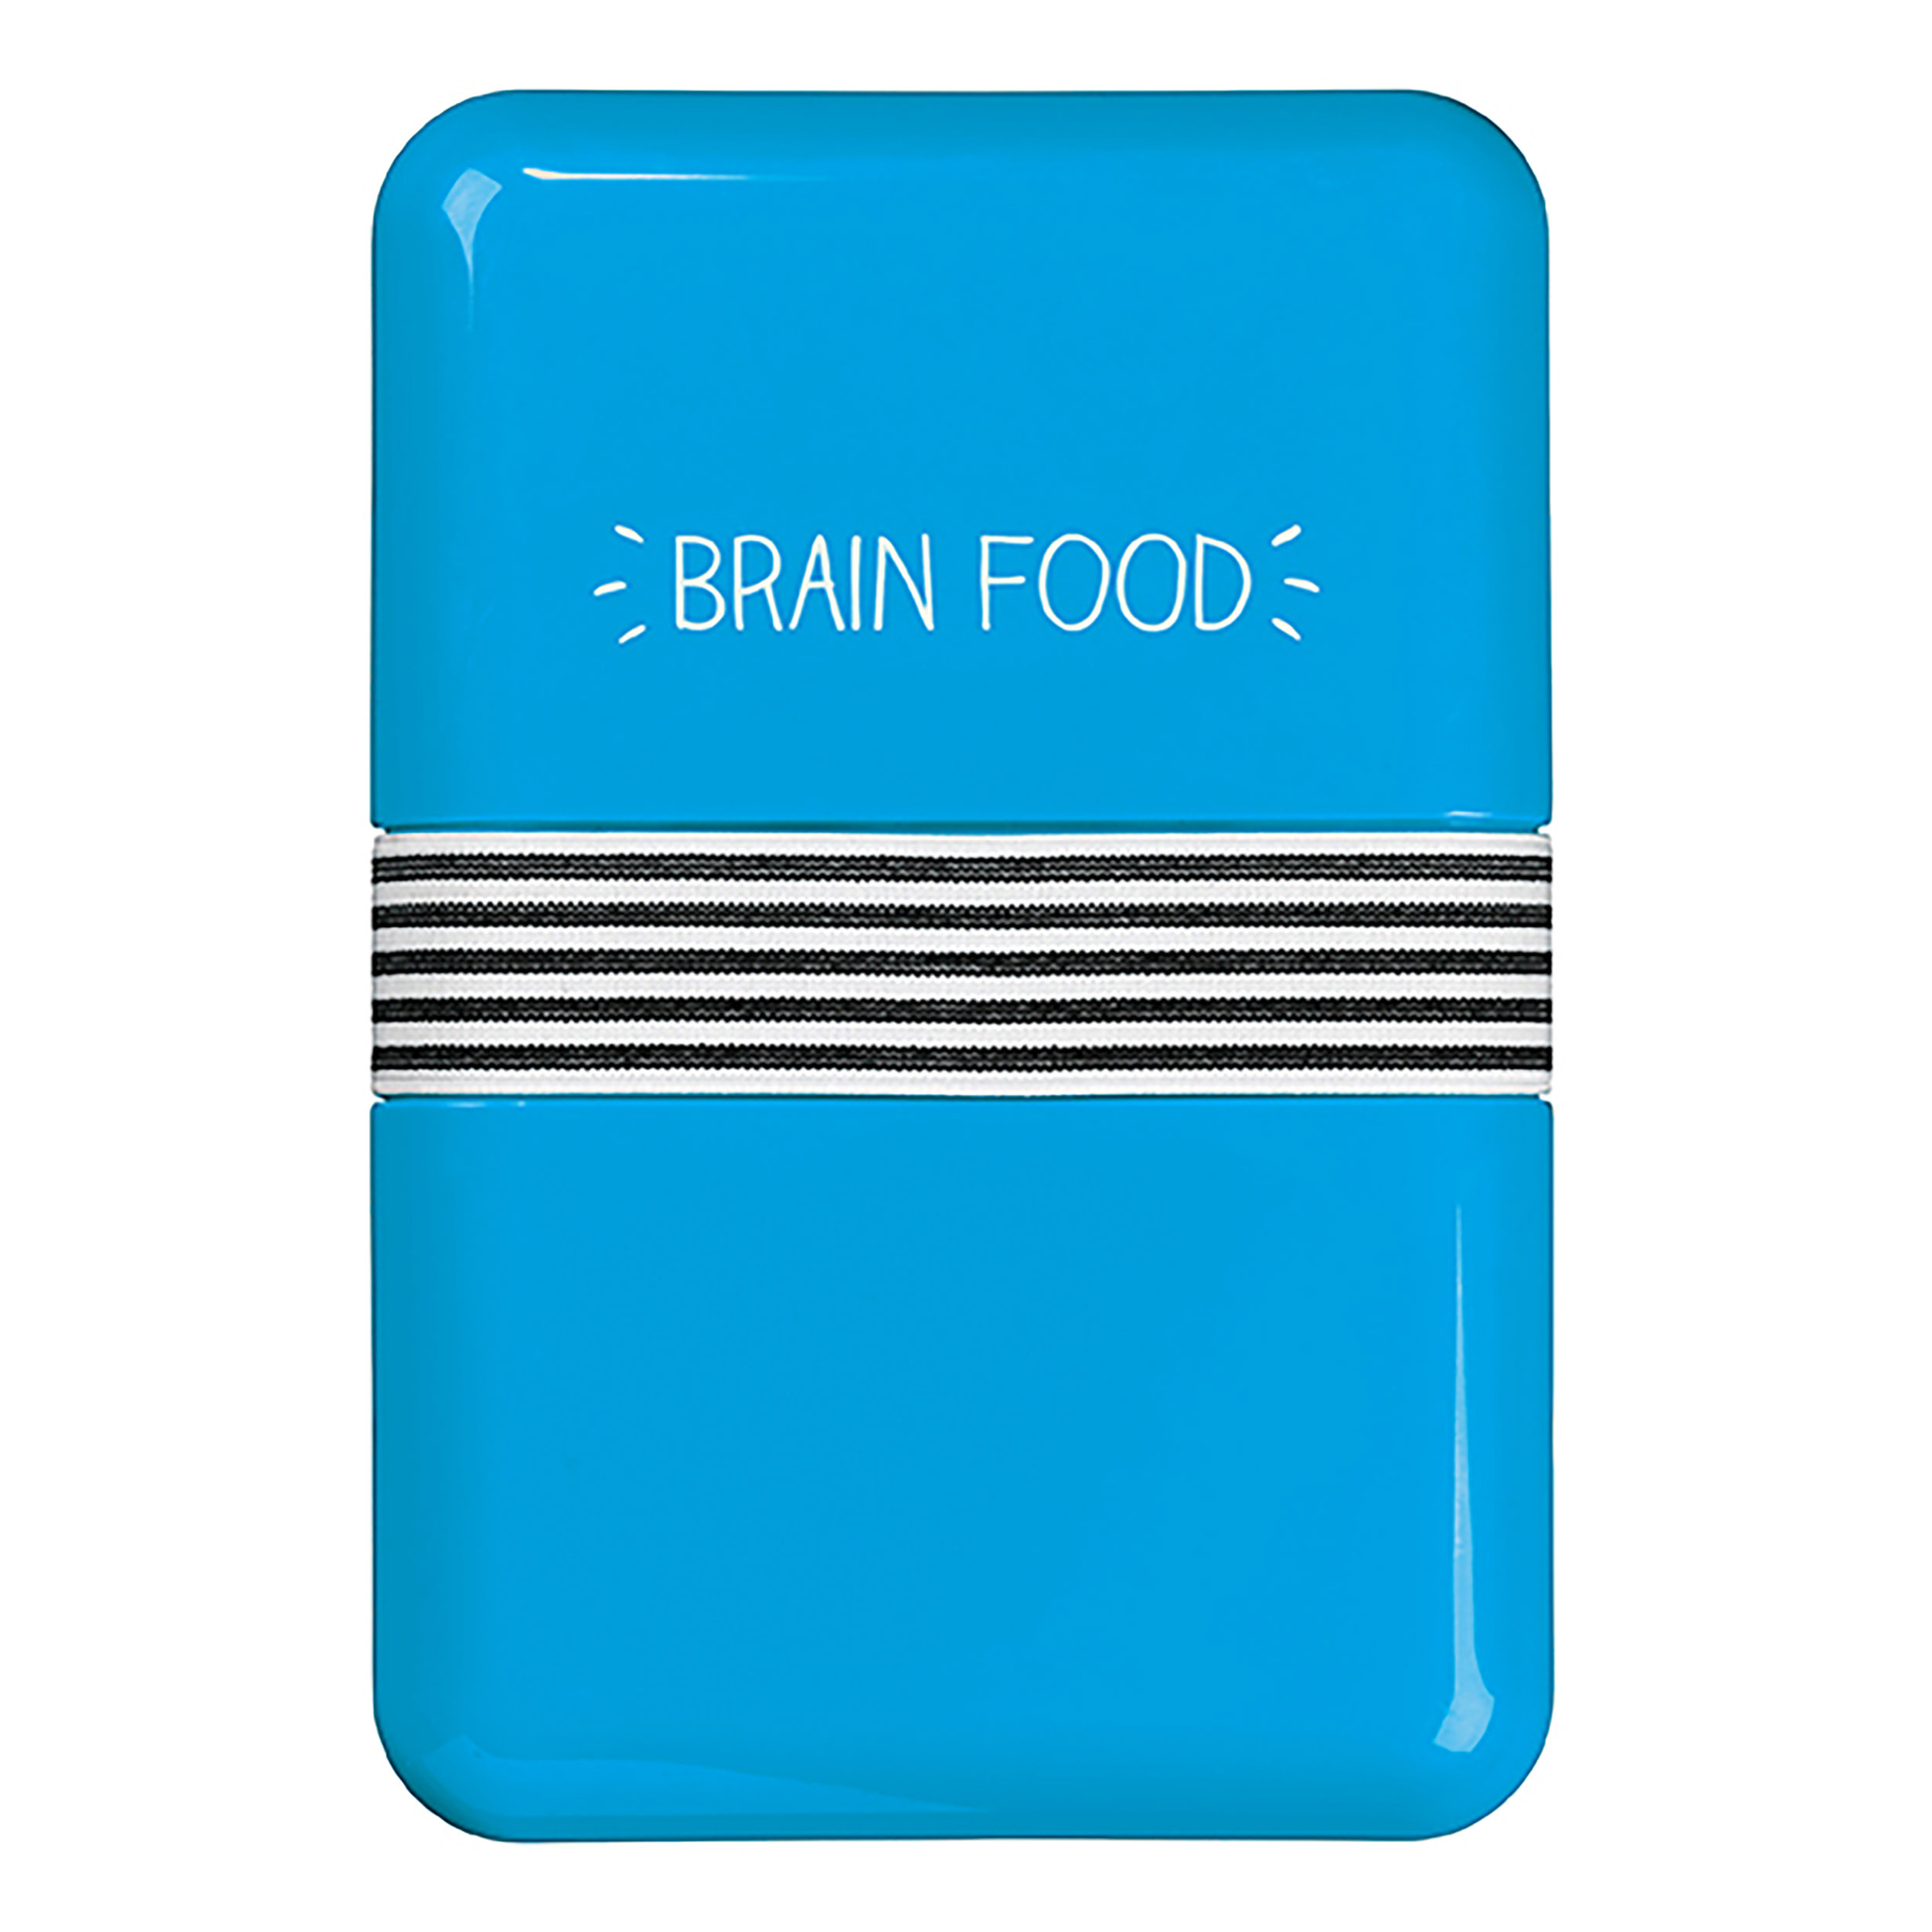 Brain Food' Lunch Box